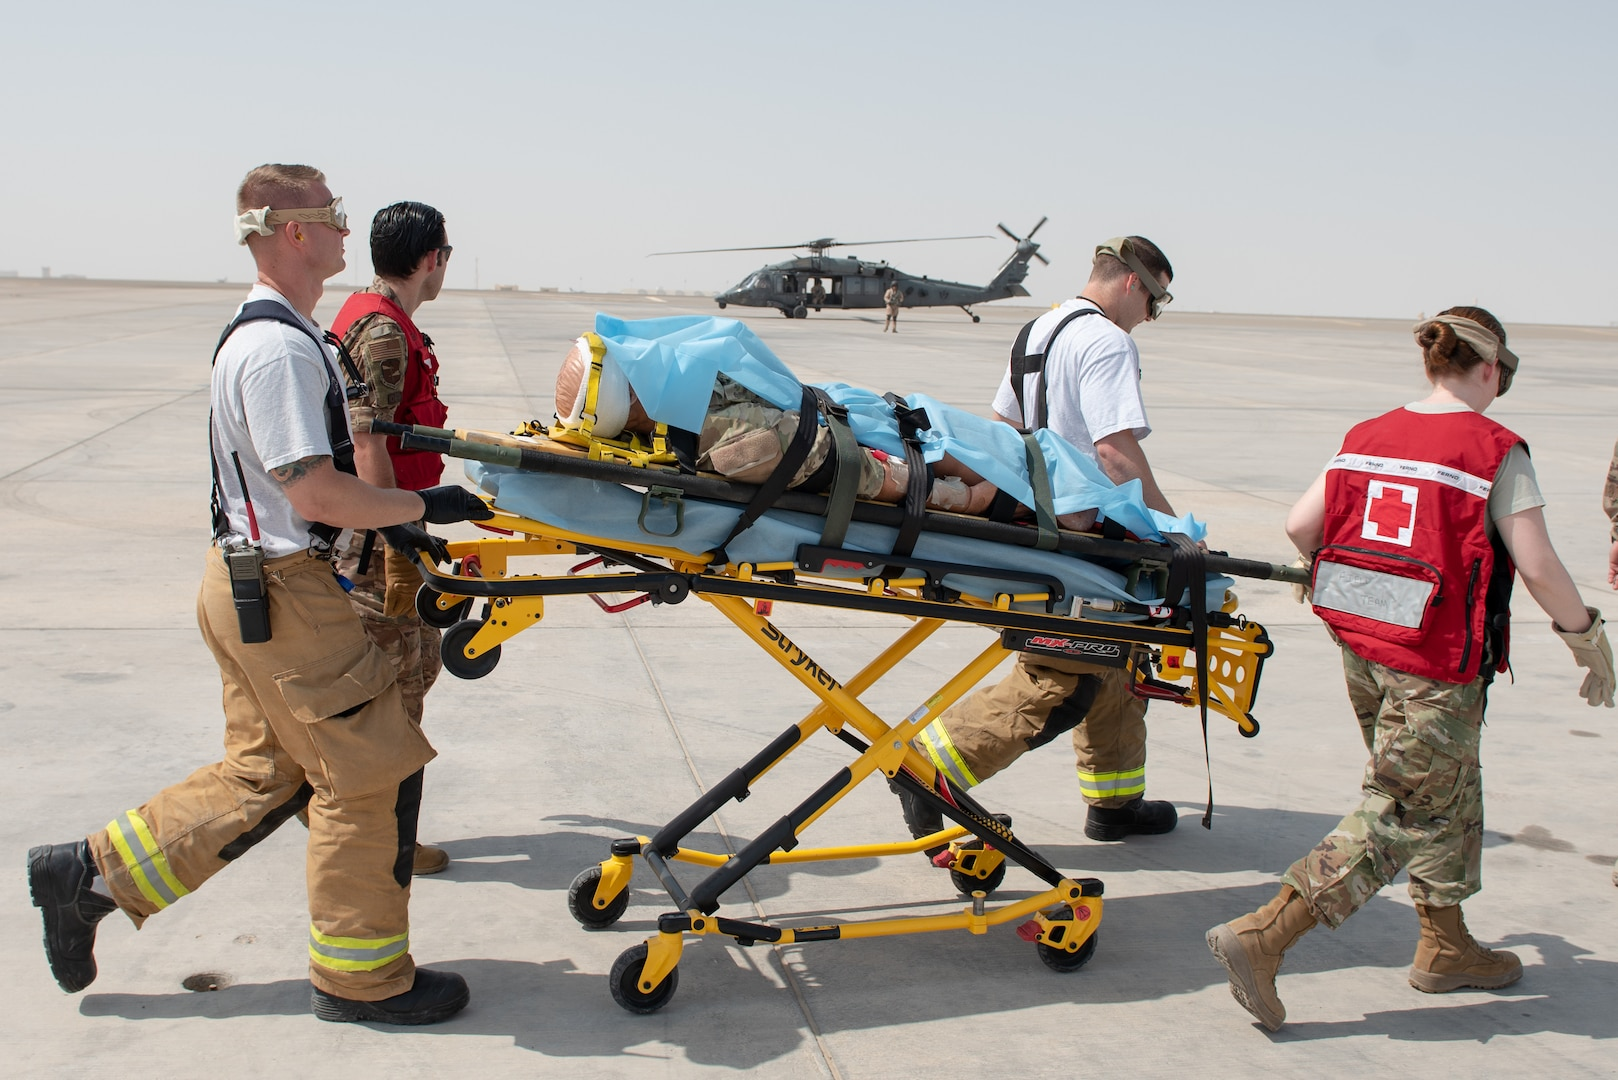 380th Air Expeditionary Wing firefighters and medics move a simulated patient to an Emirati UH-60 Black Hawk during a large first responder exercise Sept. 24, 2019, at Al Dhafra Air Base, United Arab Emirates. The exercise helped foster partnership with the United Arab Emirates Air Force Joint Aviation Command to practice an aeromedical evacuation scenario via helicopter. (U.S. Air Force photo by Staff Sgt. Chris Thornbury)